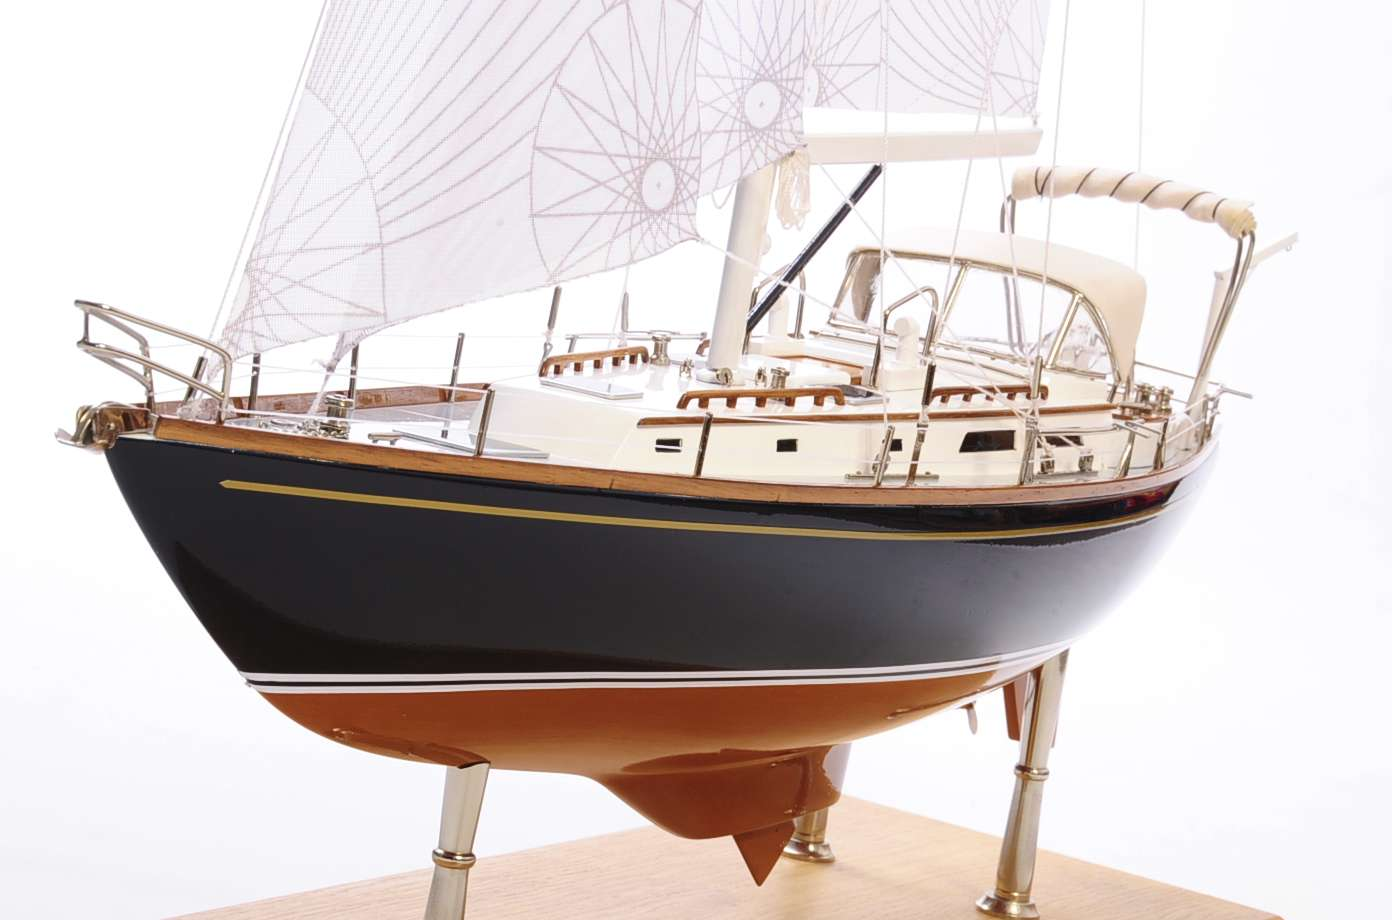 1438-4725-Indigo-Moth-Model-Yacht